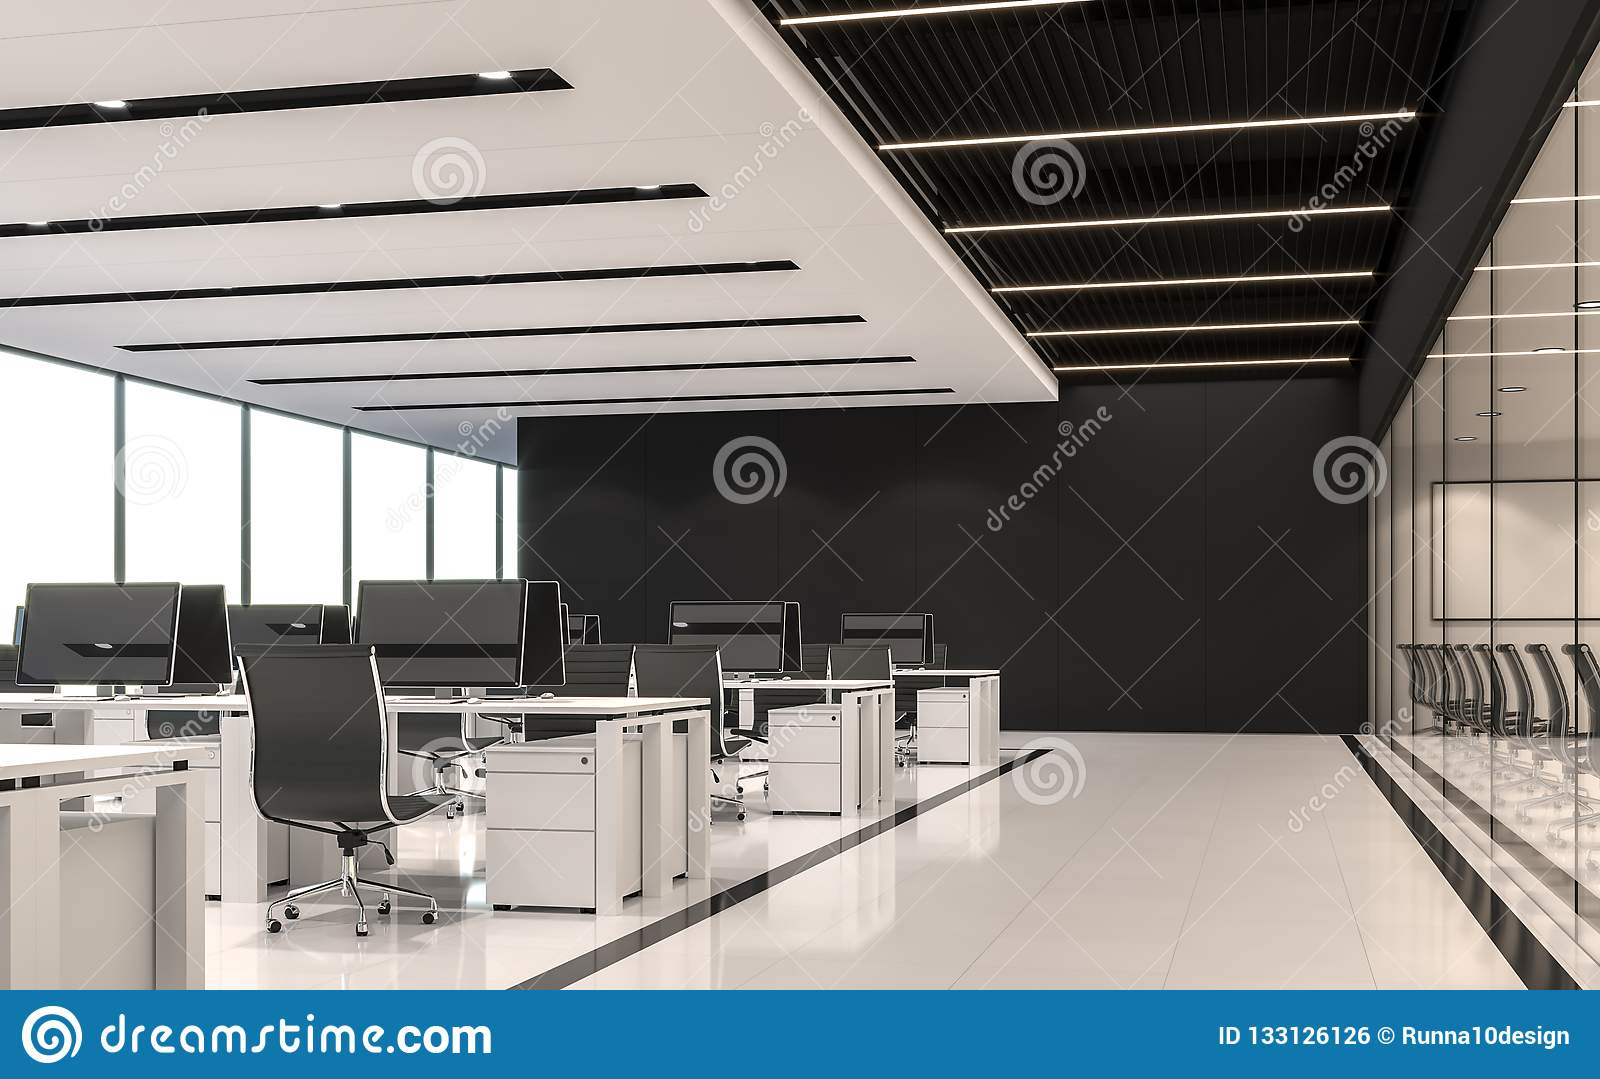 Image of: Modern Black And White Office 3d Render Stock Illustration Illustration Of Bright Ceiling 133126126